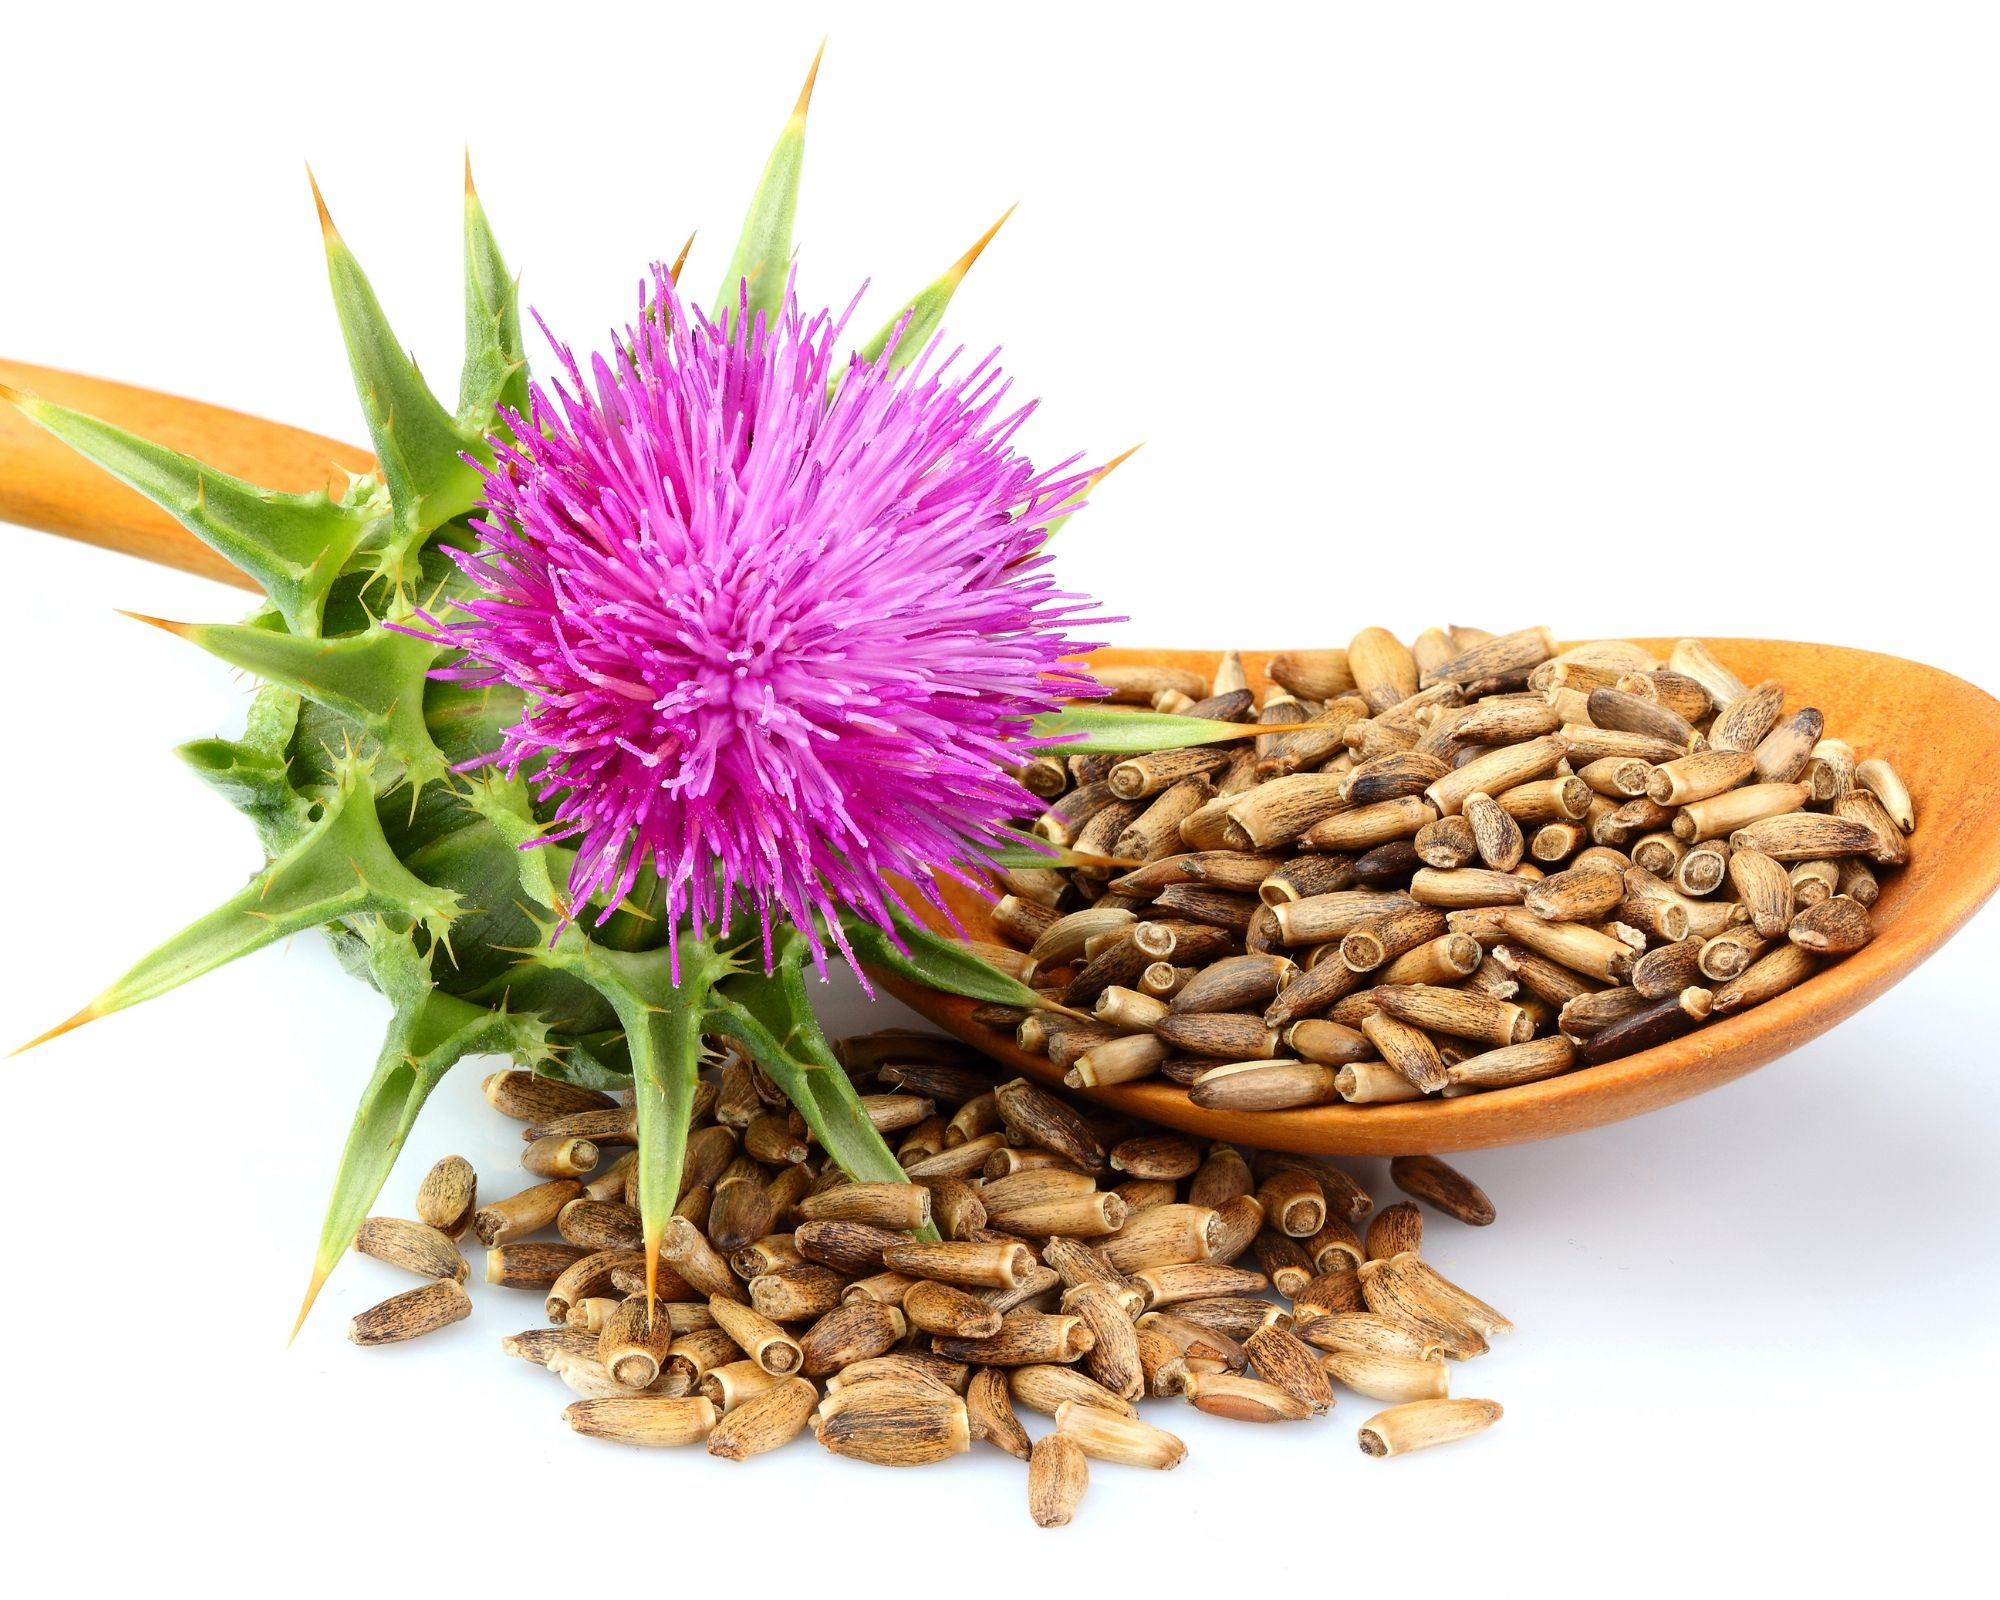 milk thistle plant and seeds